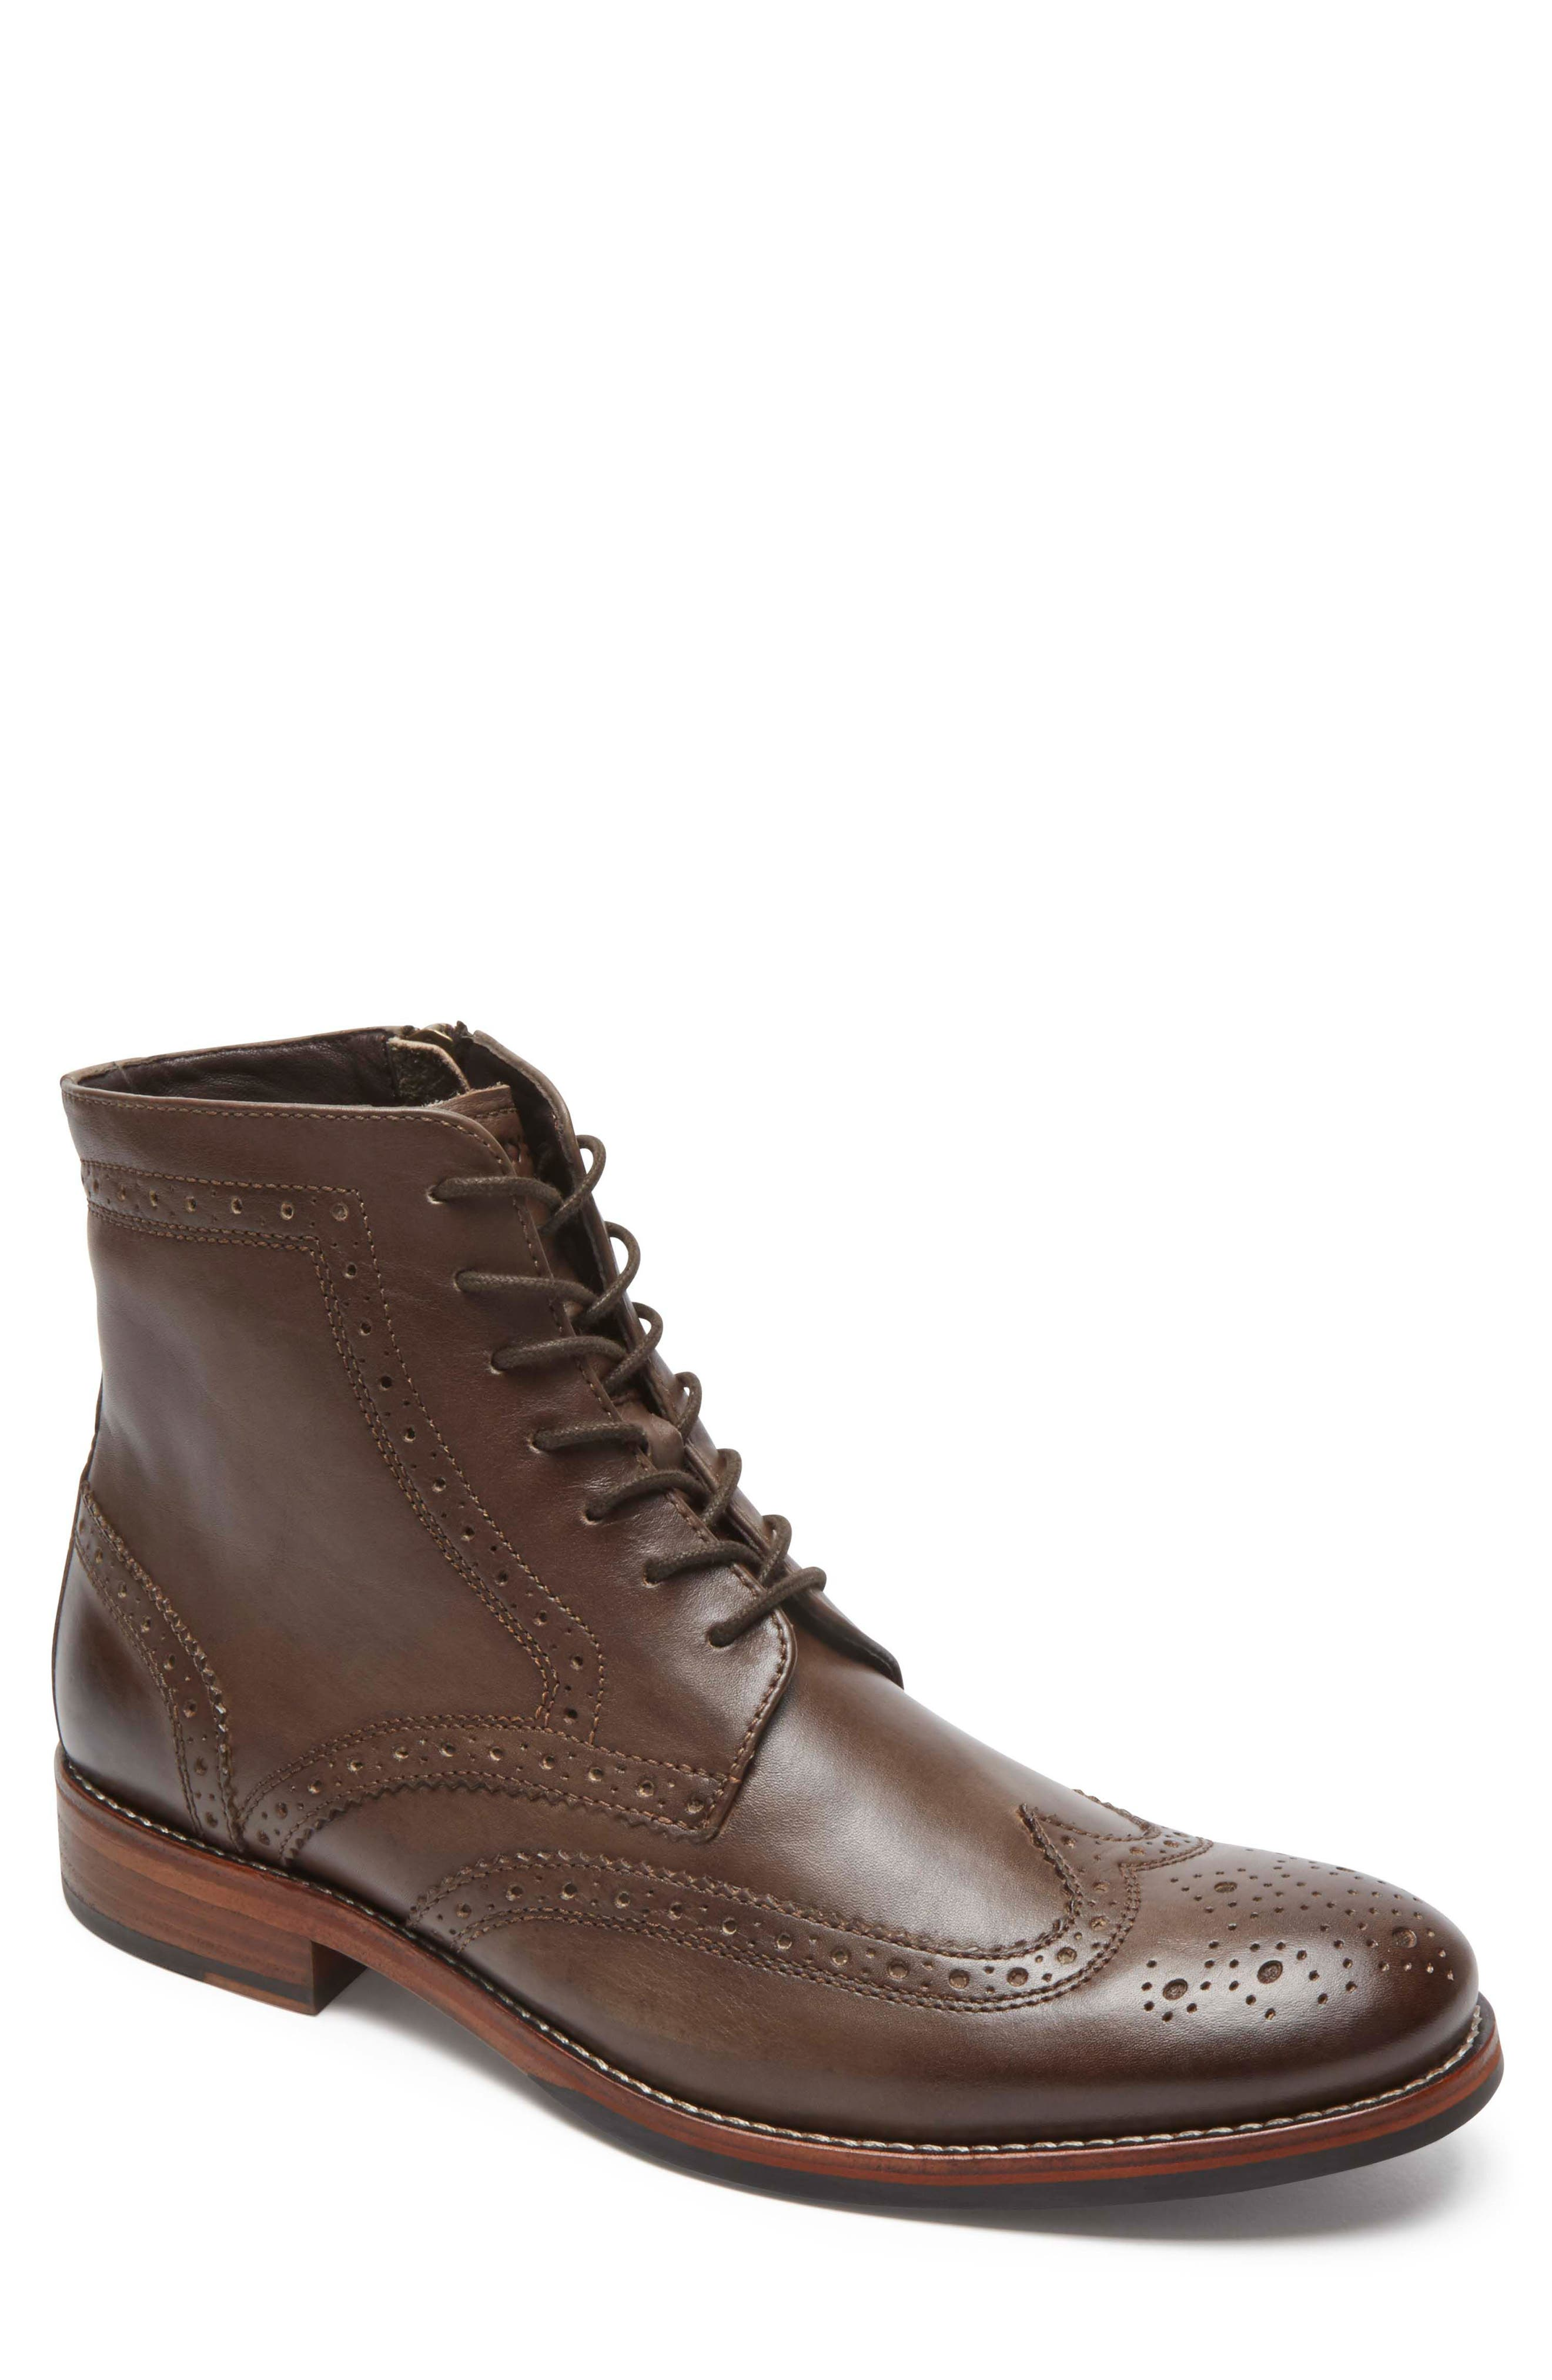 Wyat Wingtip Boot,                             Main thumbnail 1, color,                             Coffee Leather